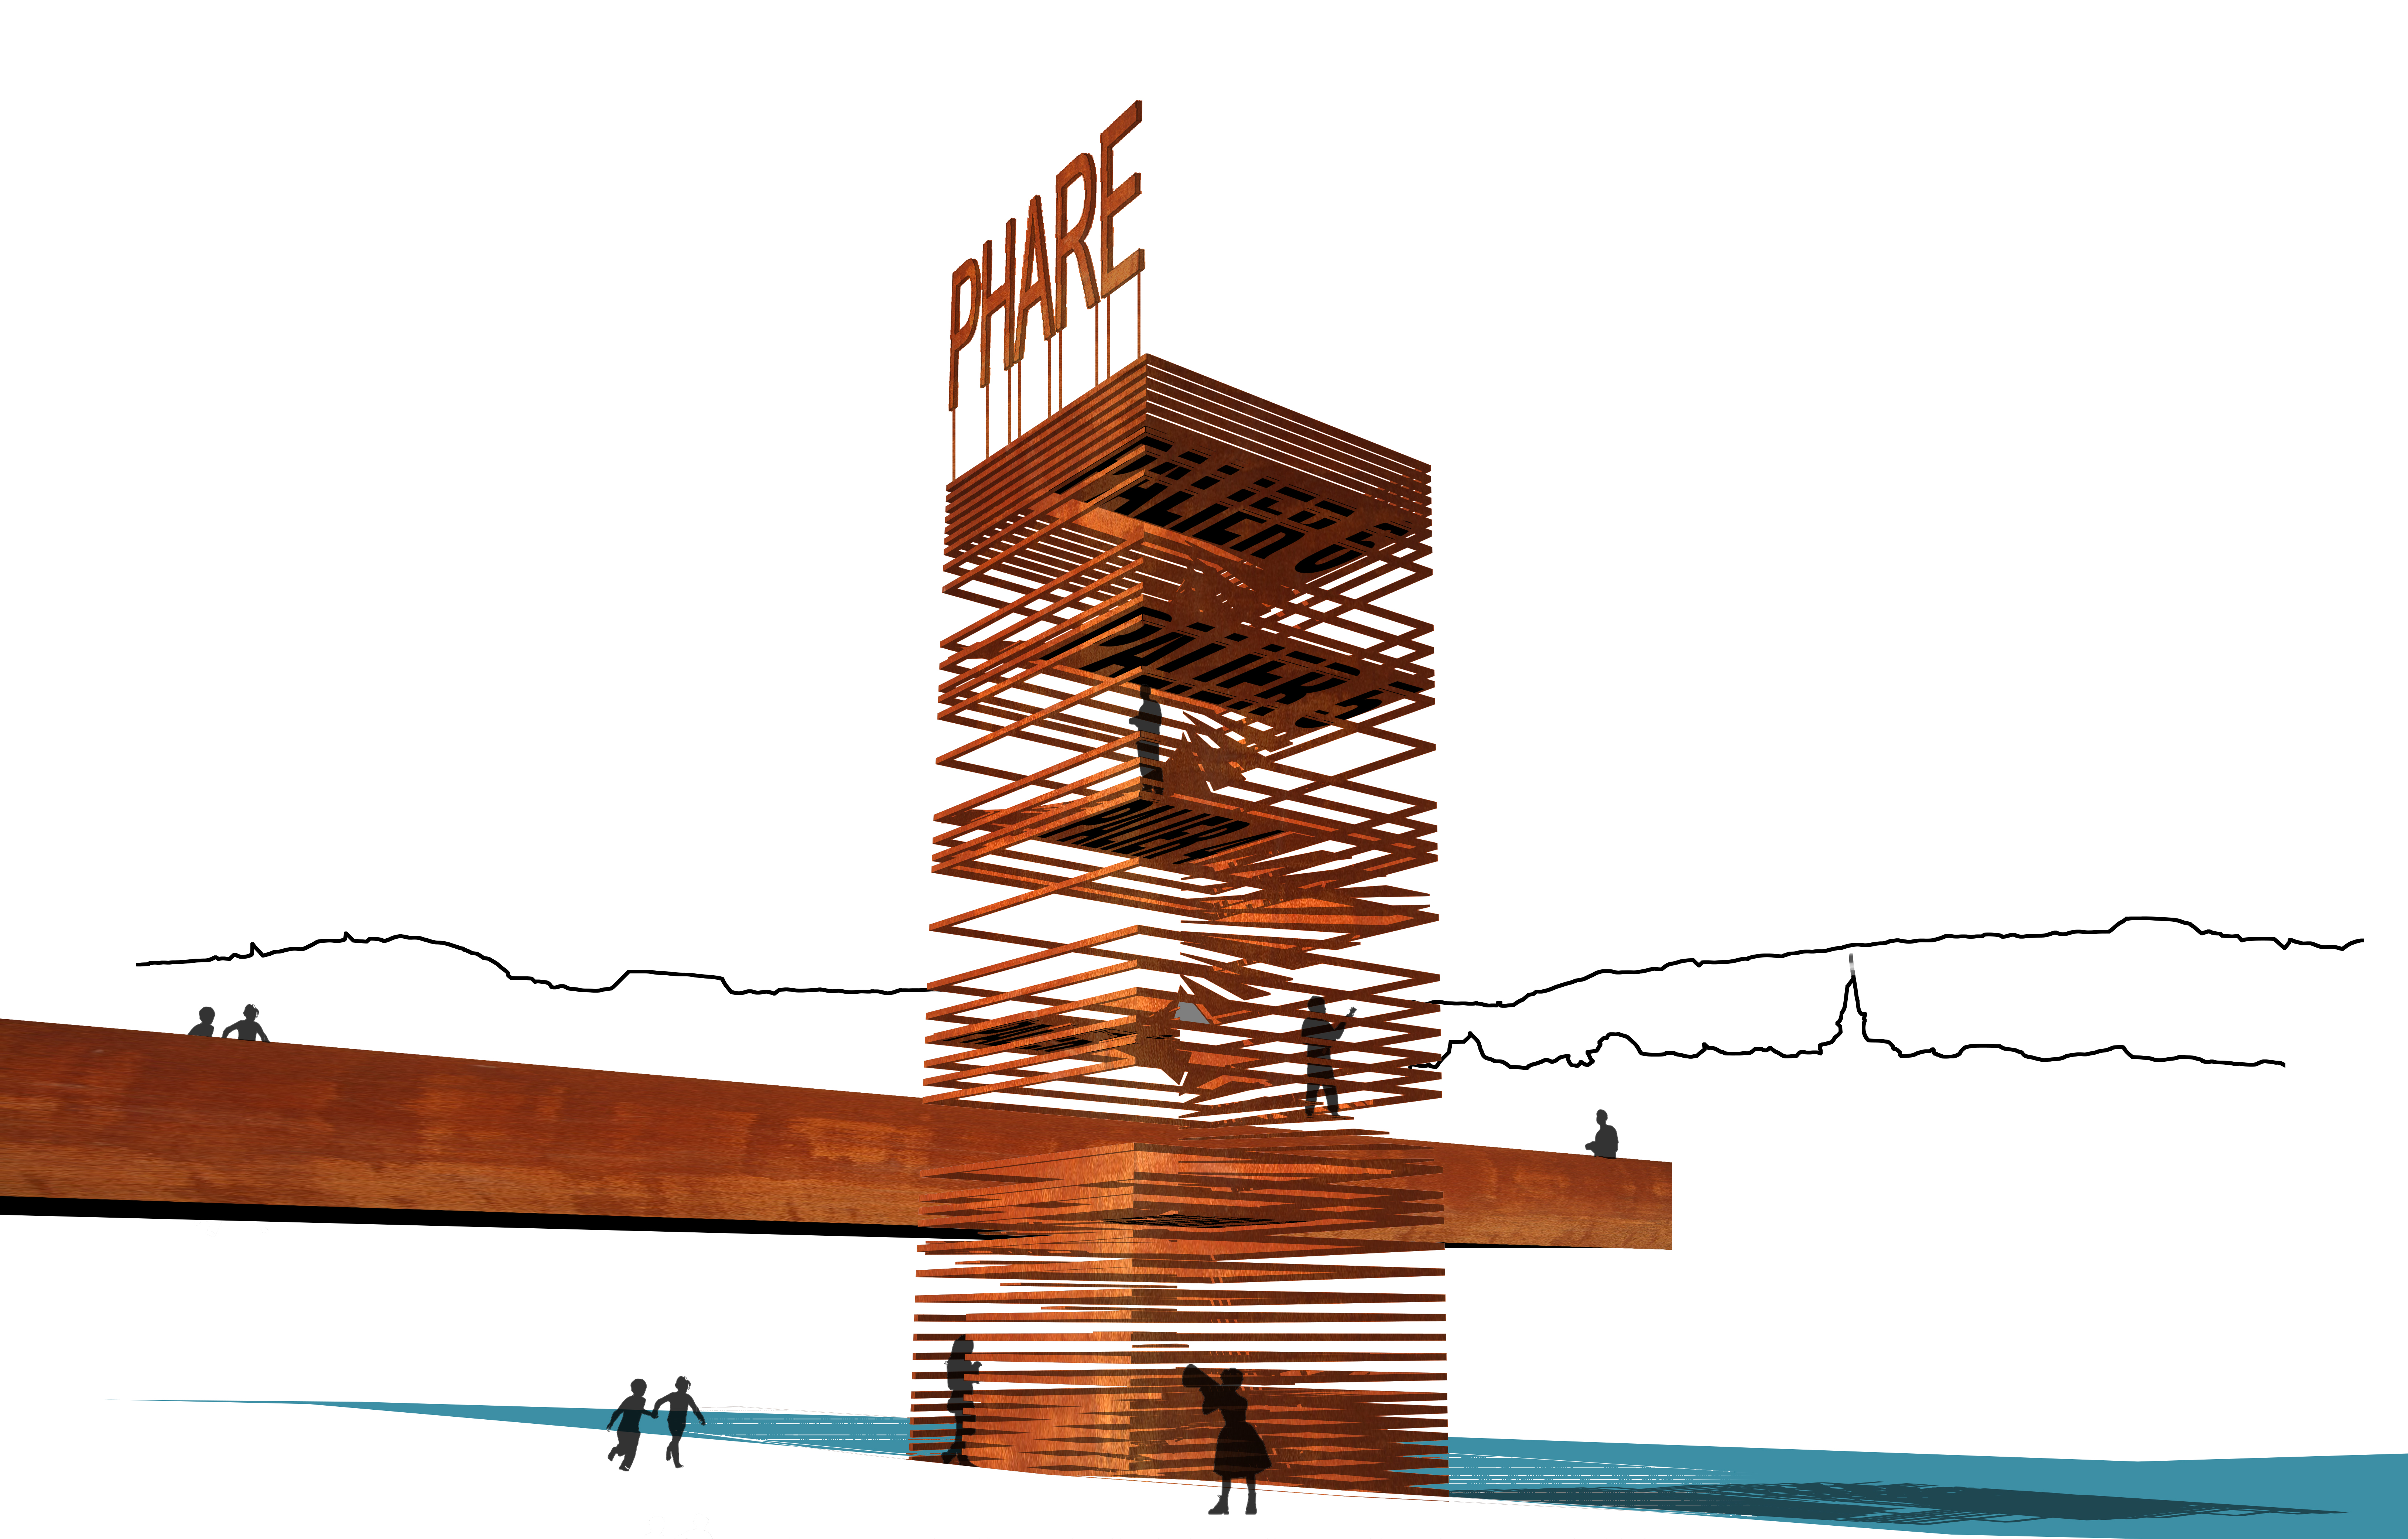 Phare perse filaire